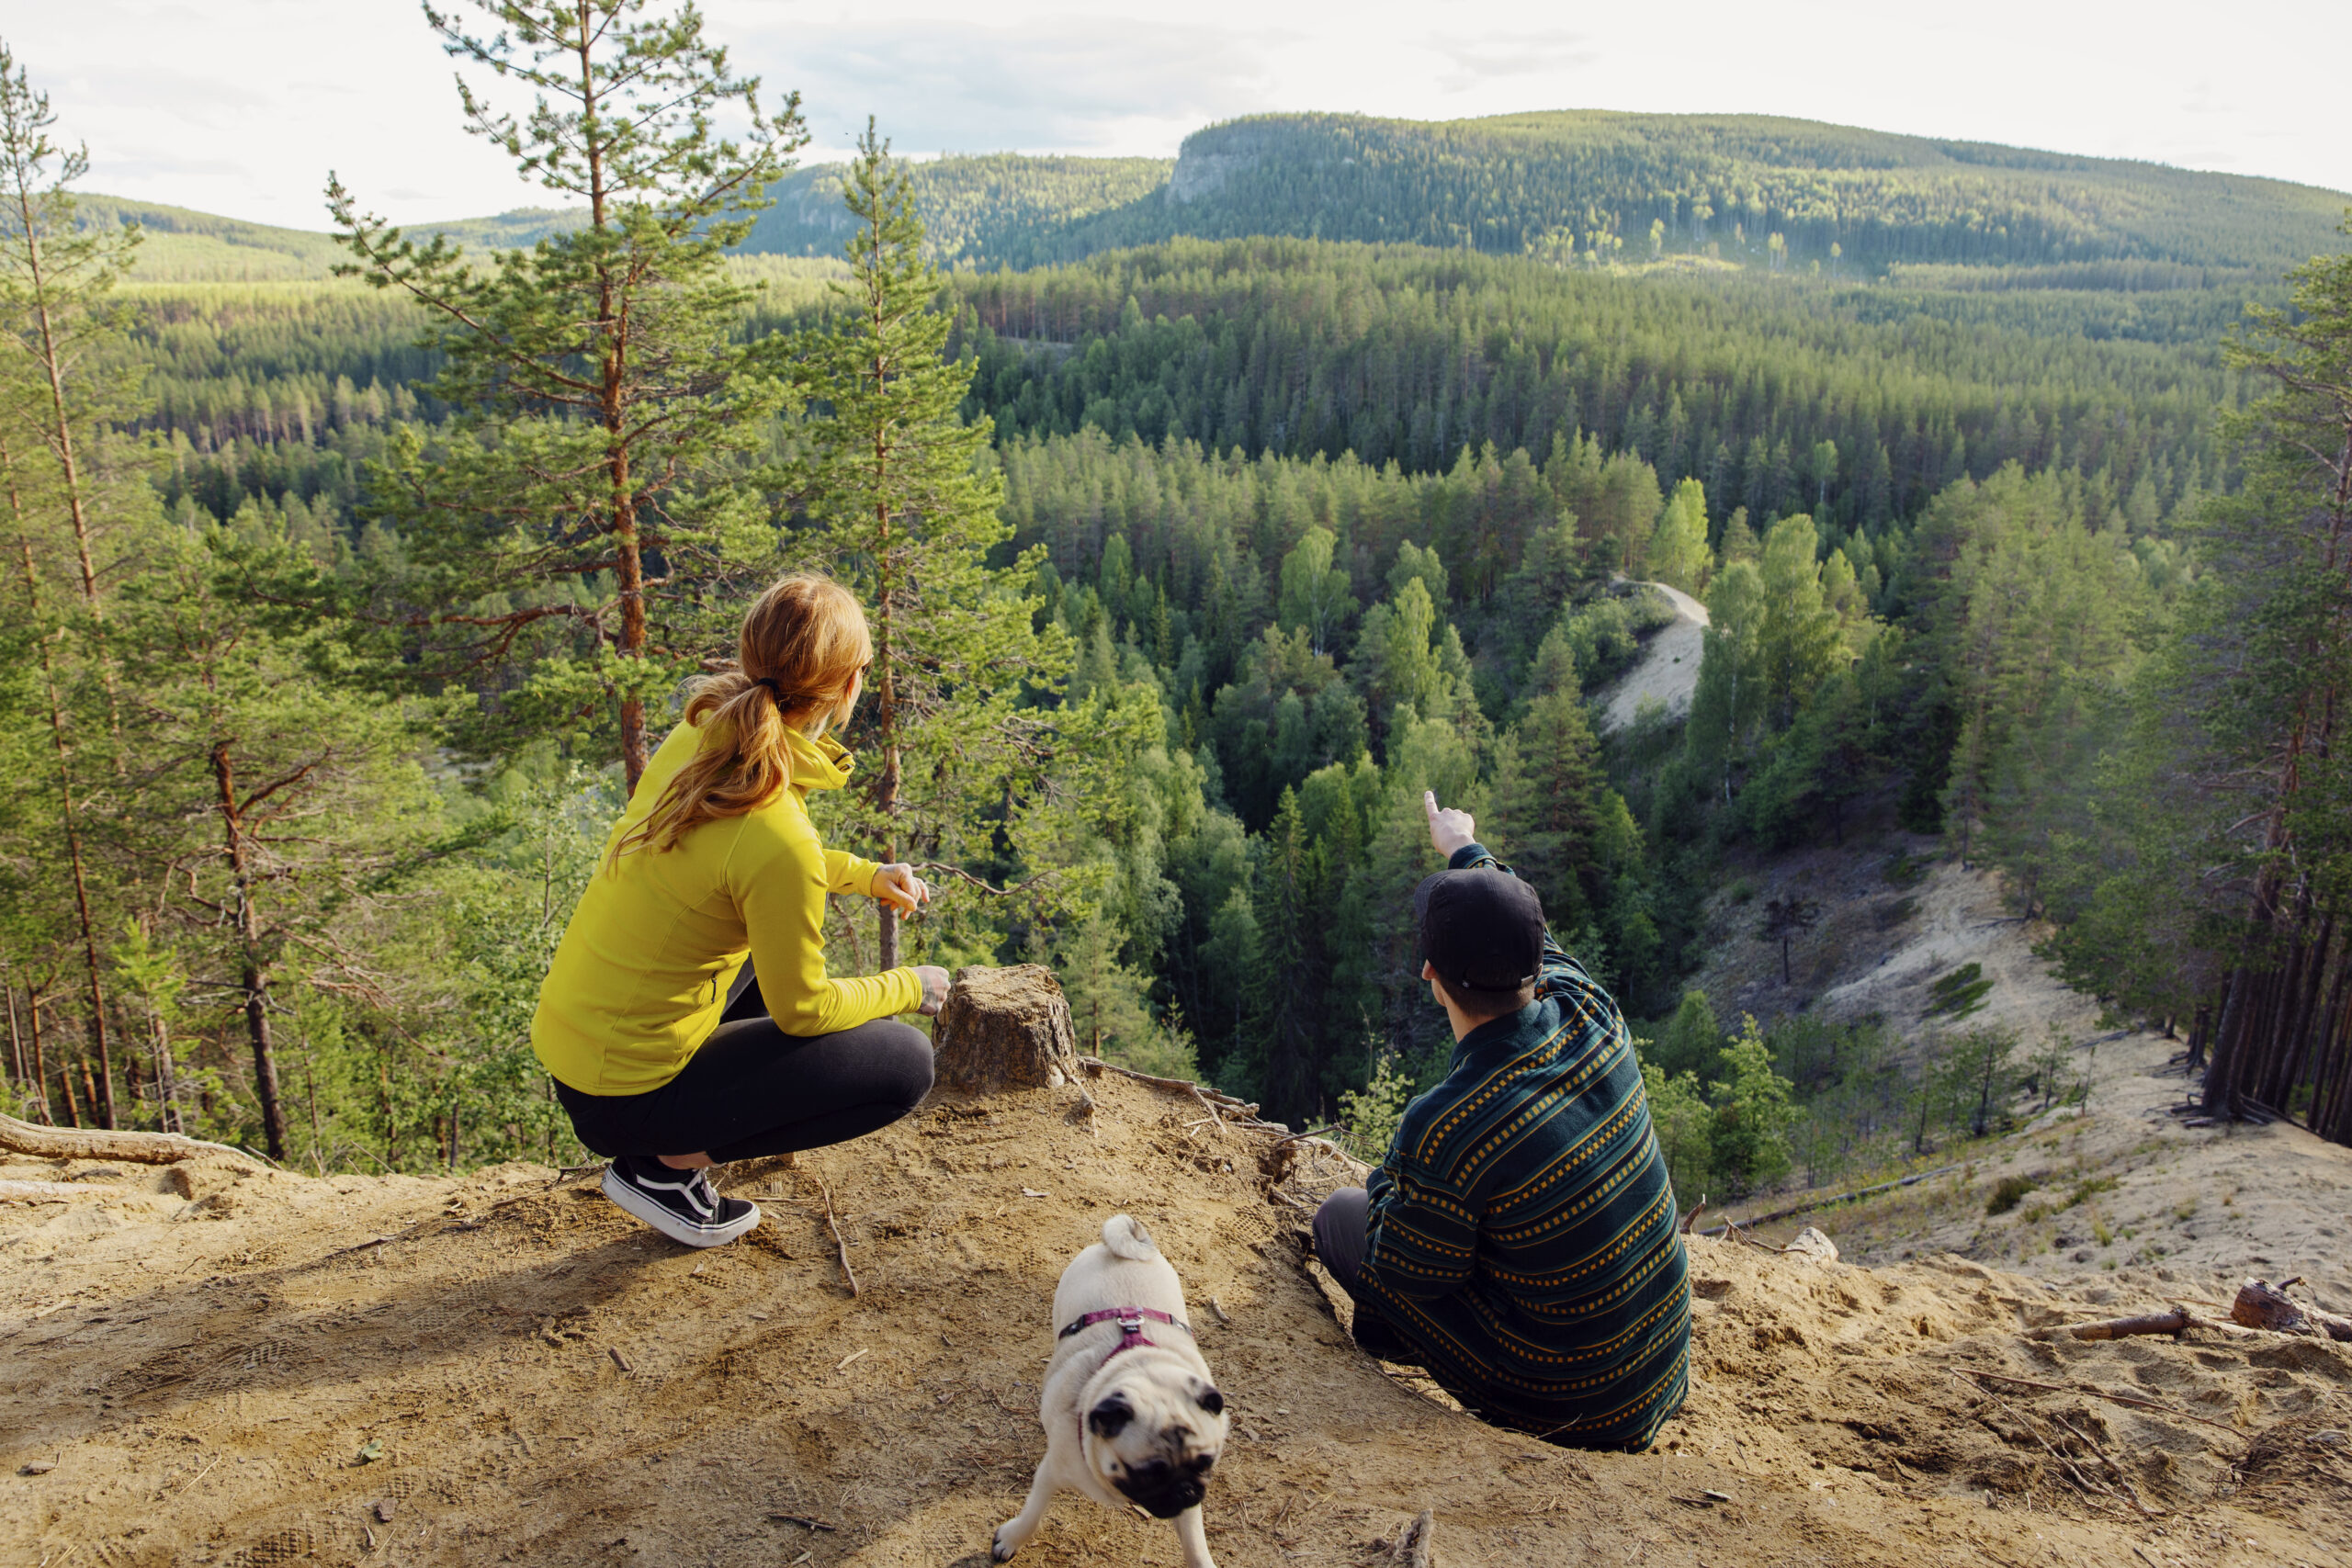 Two people and a dog out trekking, pauses and looks at the view of forest.